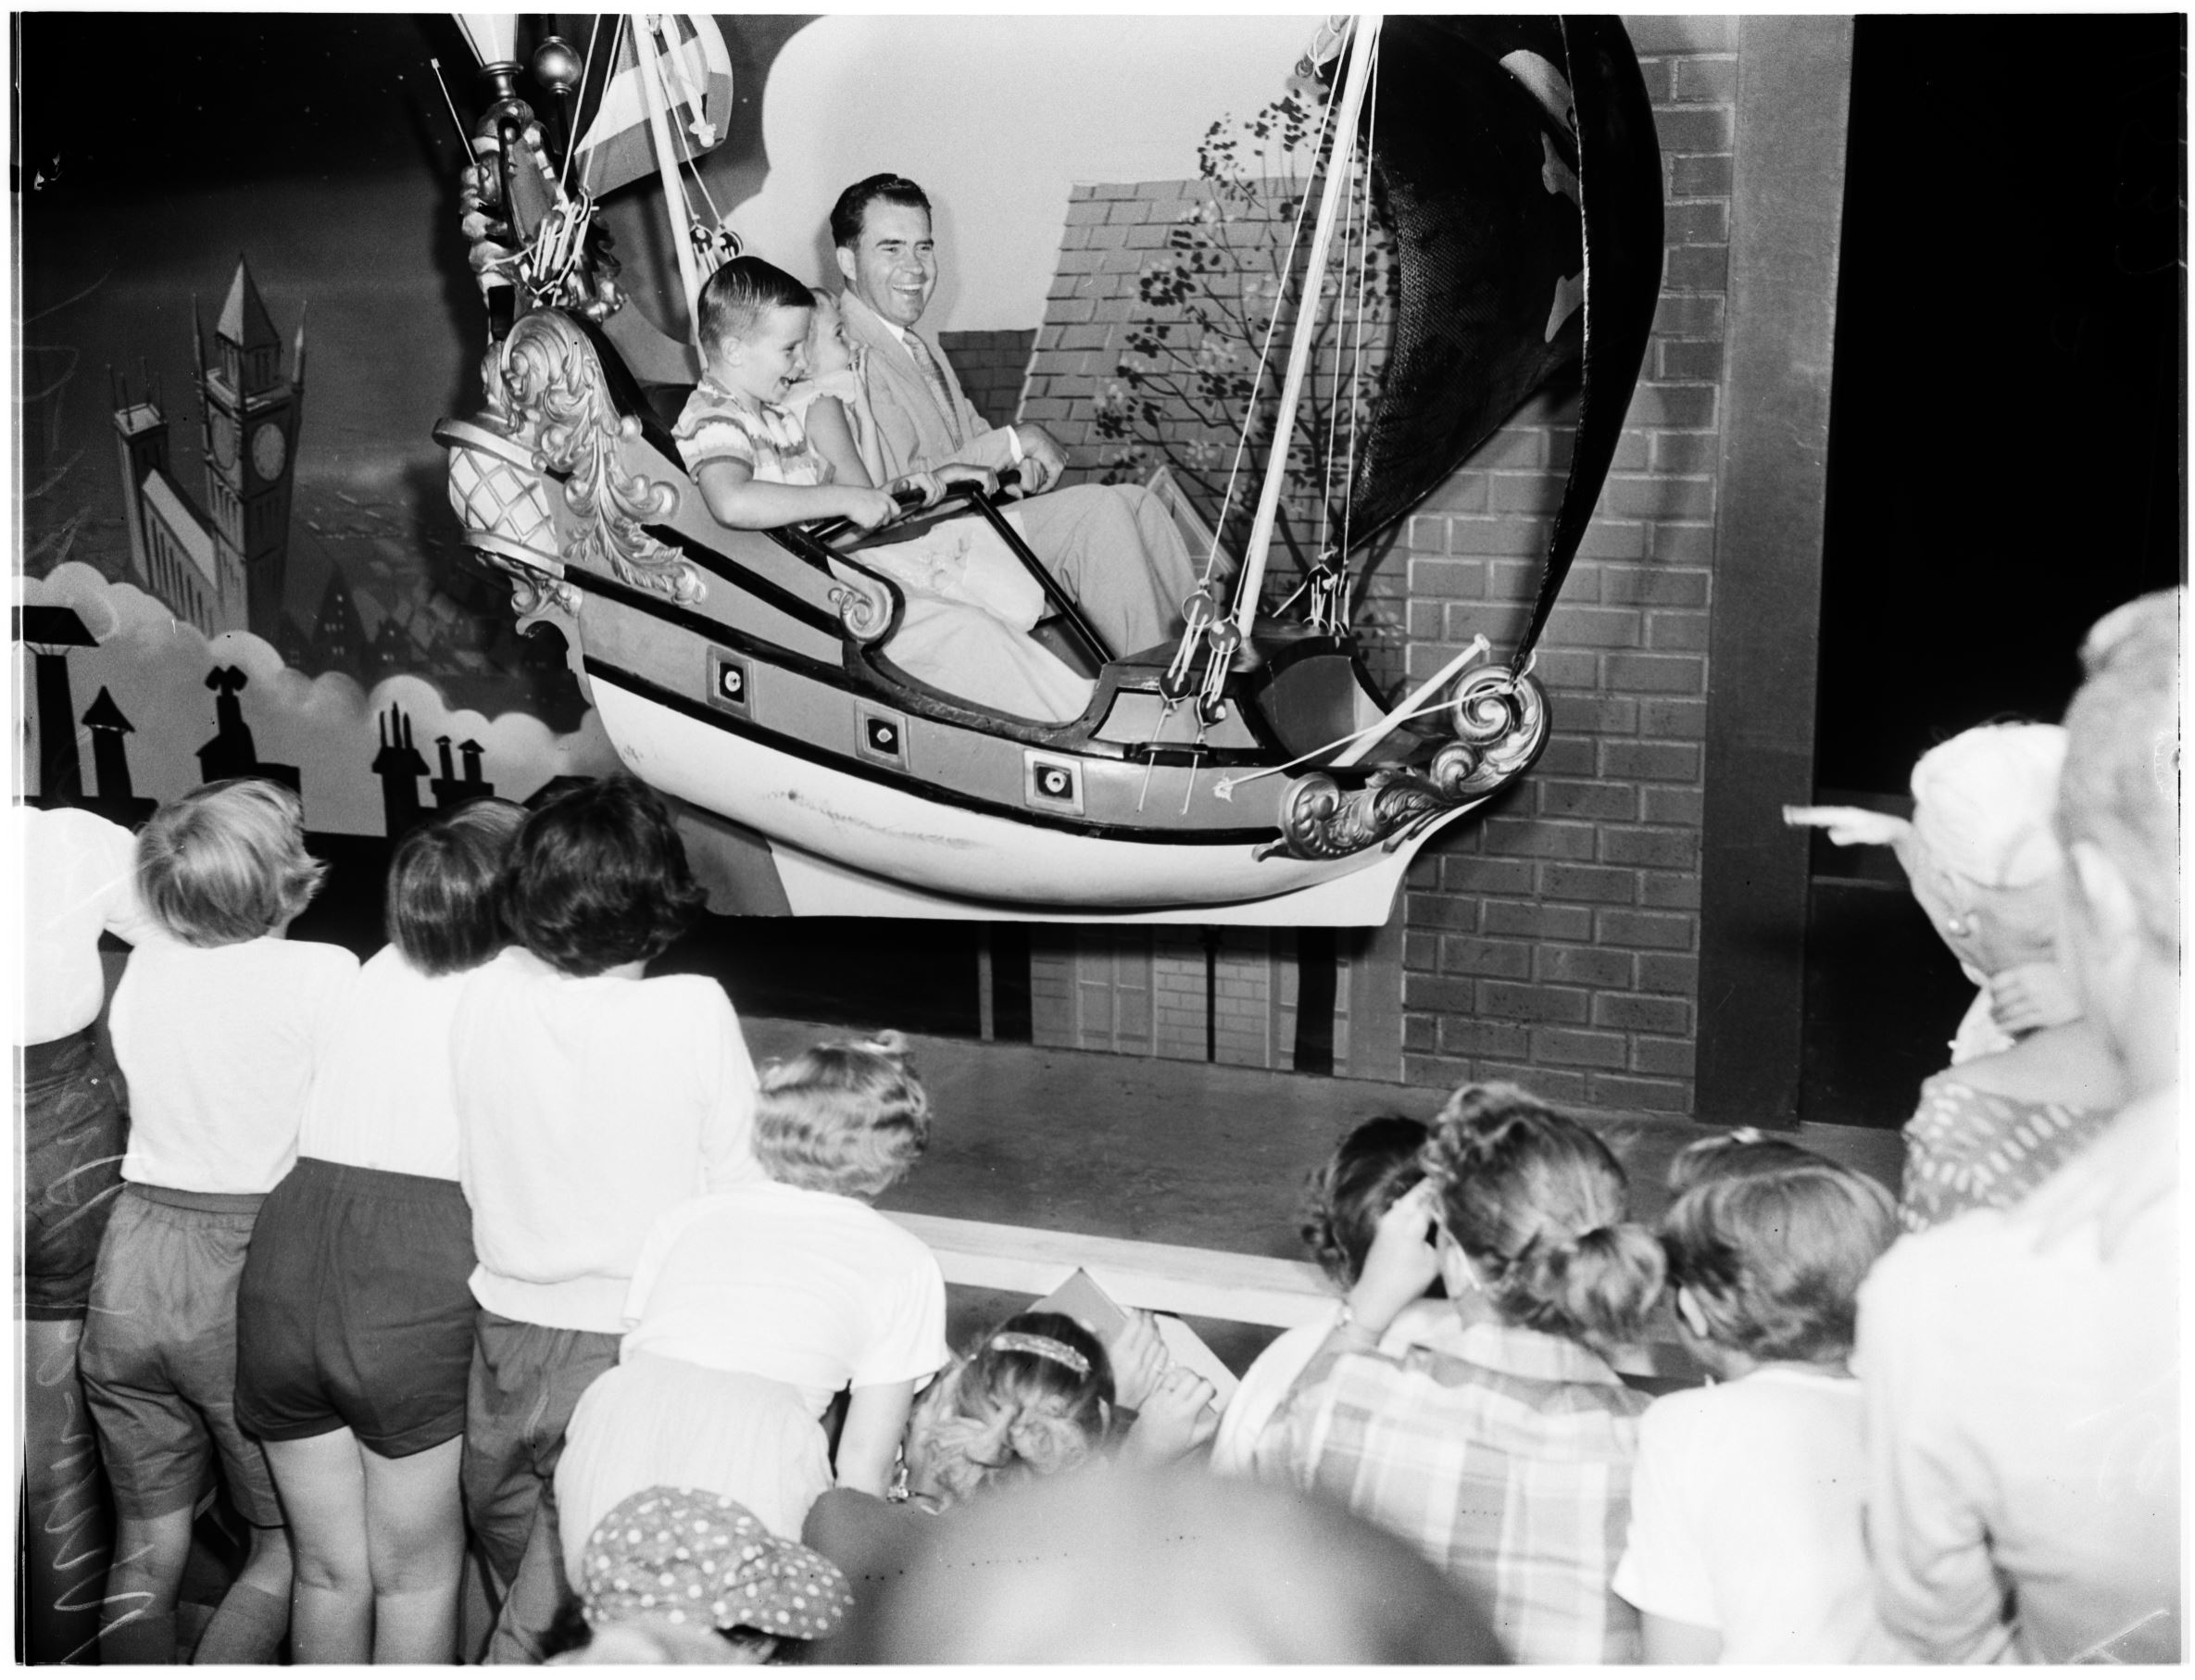 Slide 5 of 33: Donnie Nixon (nephew);Tricia, 9, and Vice President Nixon on Peter Pan ride EXM-N-11537-010~8 (Photo by USC Libraries/Corbis via Getty Images)